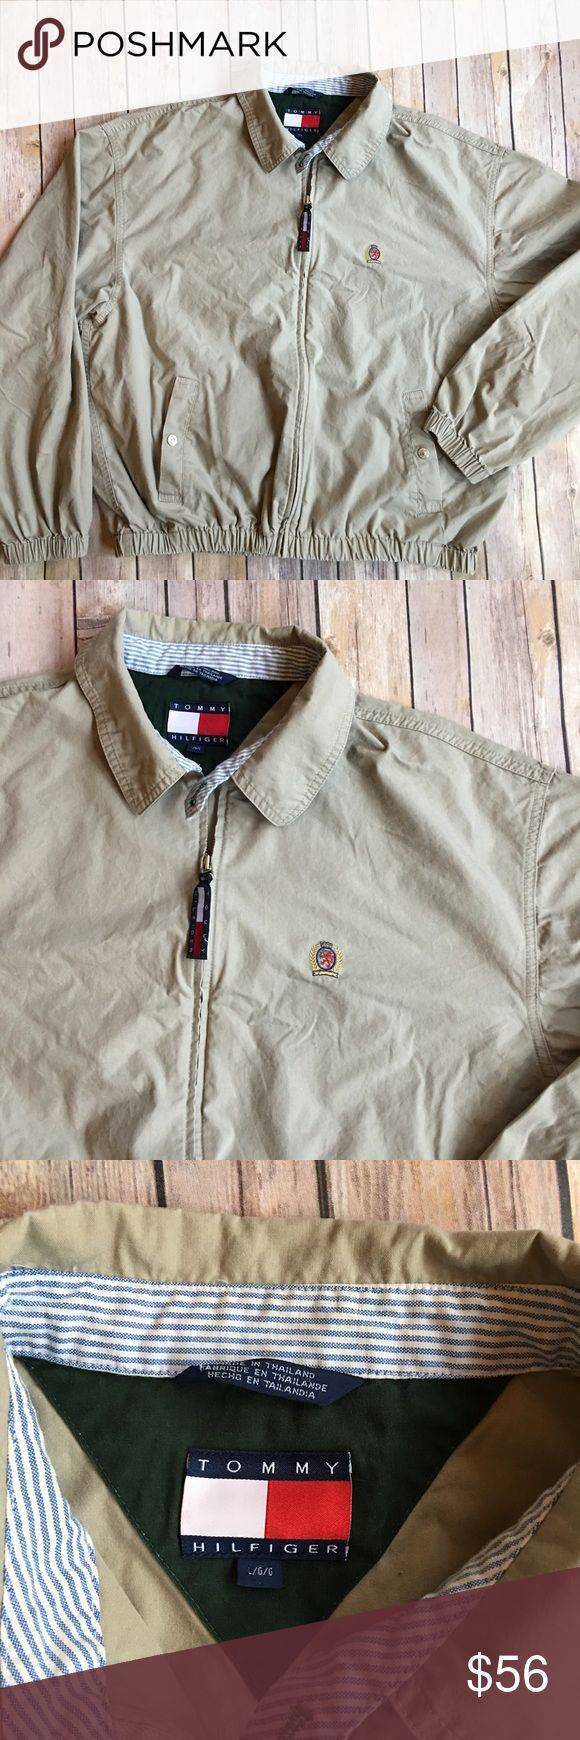 """Vintage Tommy Hilfiger Harrington bomber jacket This 90's vintage jacket is in excellent condition and appears as new. No flaws. 100% cotton. Full zip. 26"""" long and 26"""" from armpit to armpit (measurements taken lying flat). Snap button pockets at hips, Tommy Hilfiger crest at left chest. Tommy Hilfiger logo on back neck, and zipper pull, button collar. Handsome and classic style jacket that's perfect for a light chill or a fashion layer. Tommy Hilfiger Jackets & Coats Lightweight & Shirt…"""